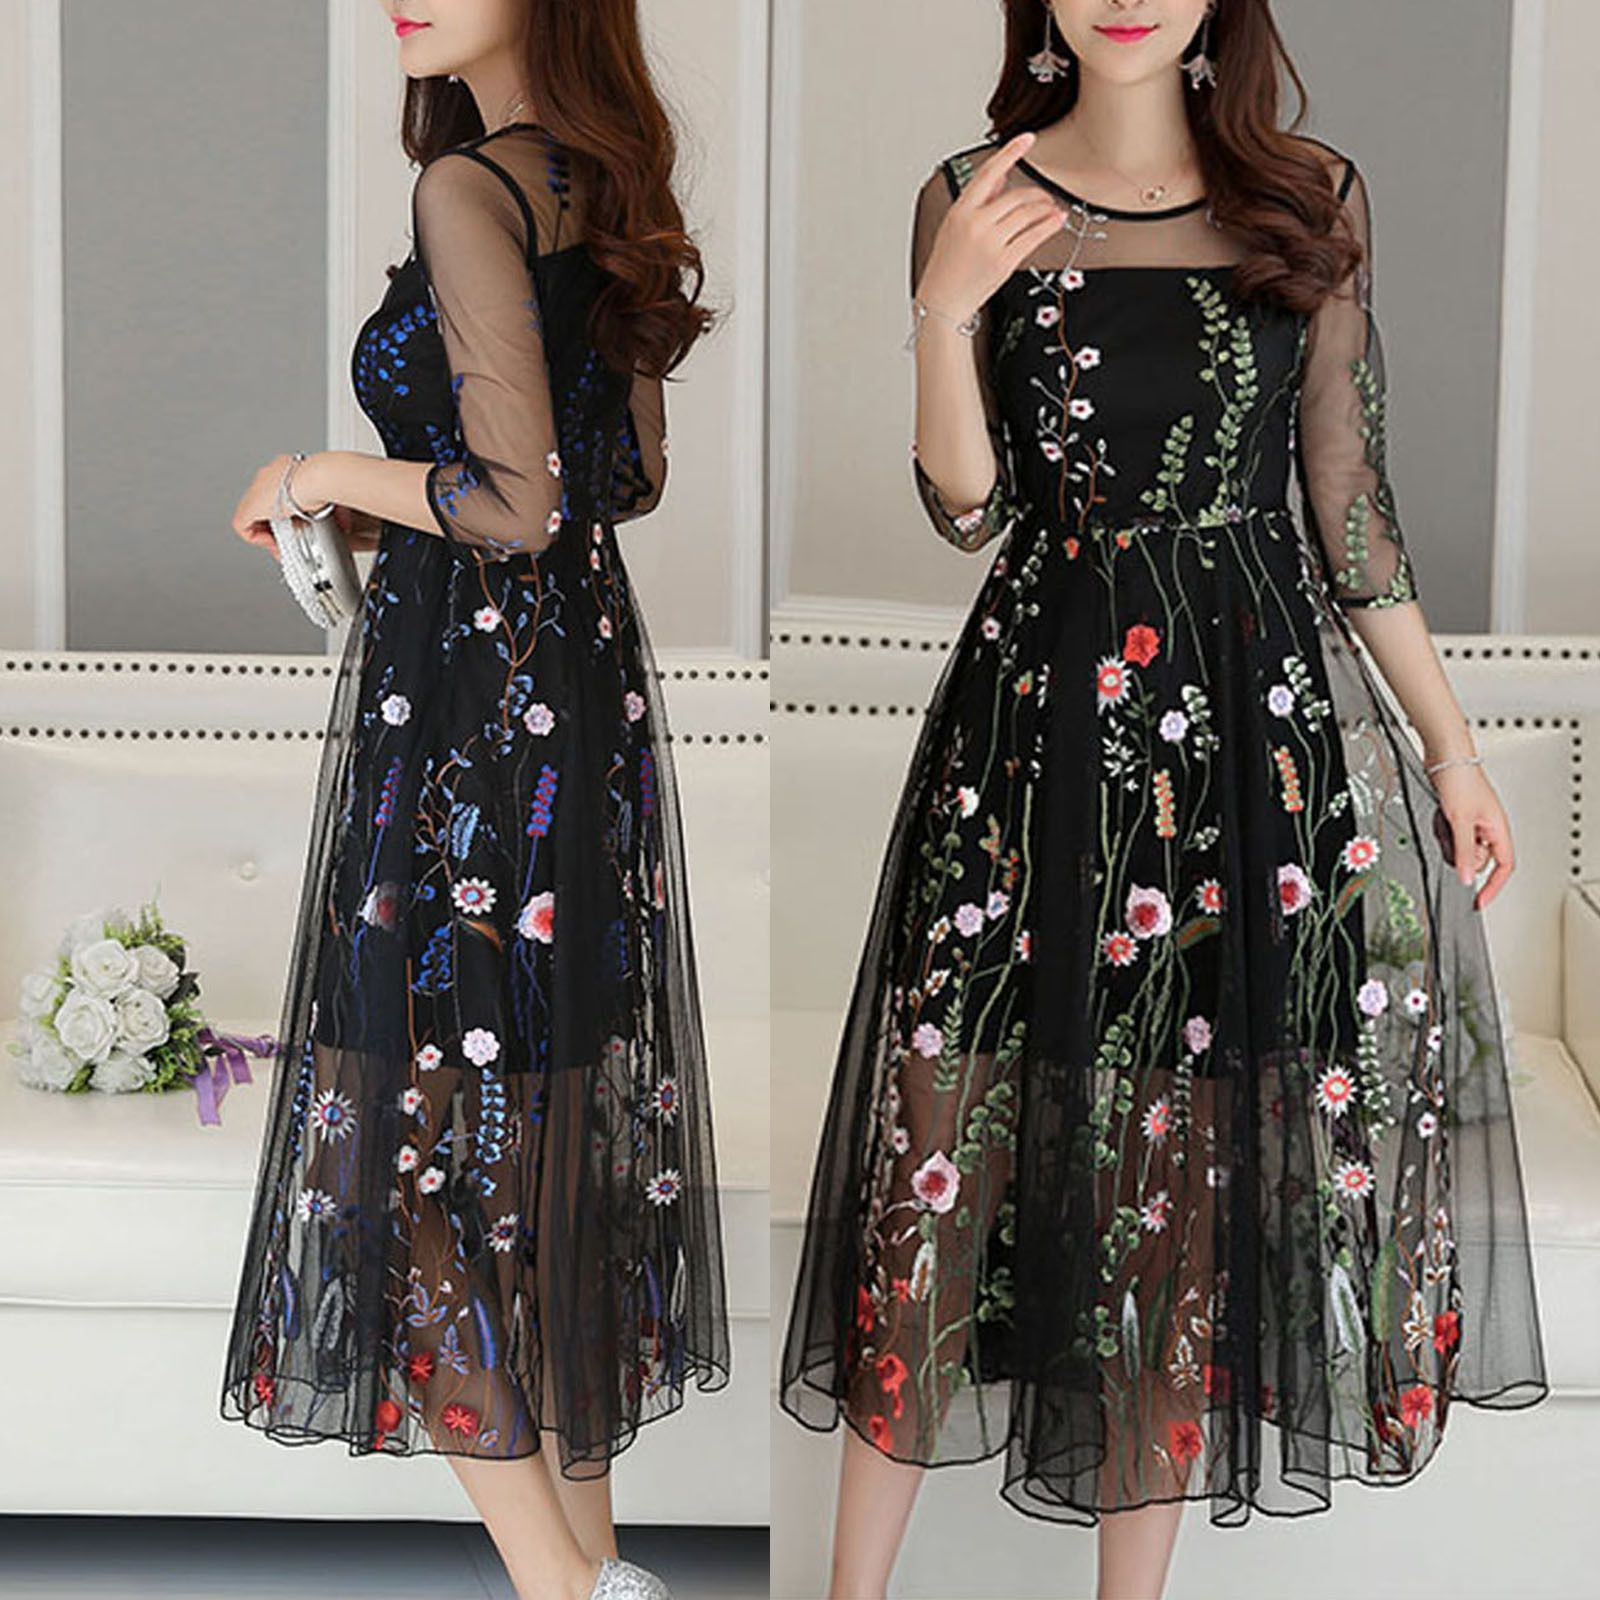 women mesh embroidery floral evening party wedding cocktail